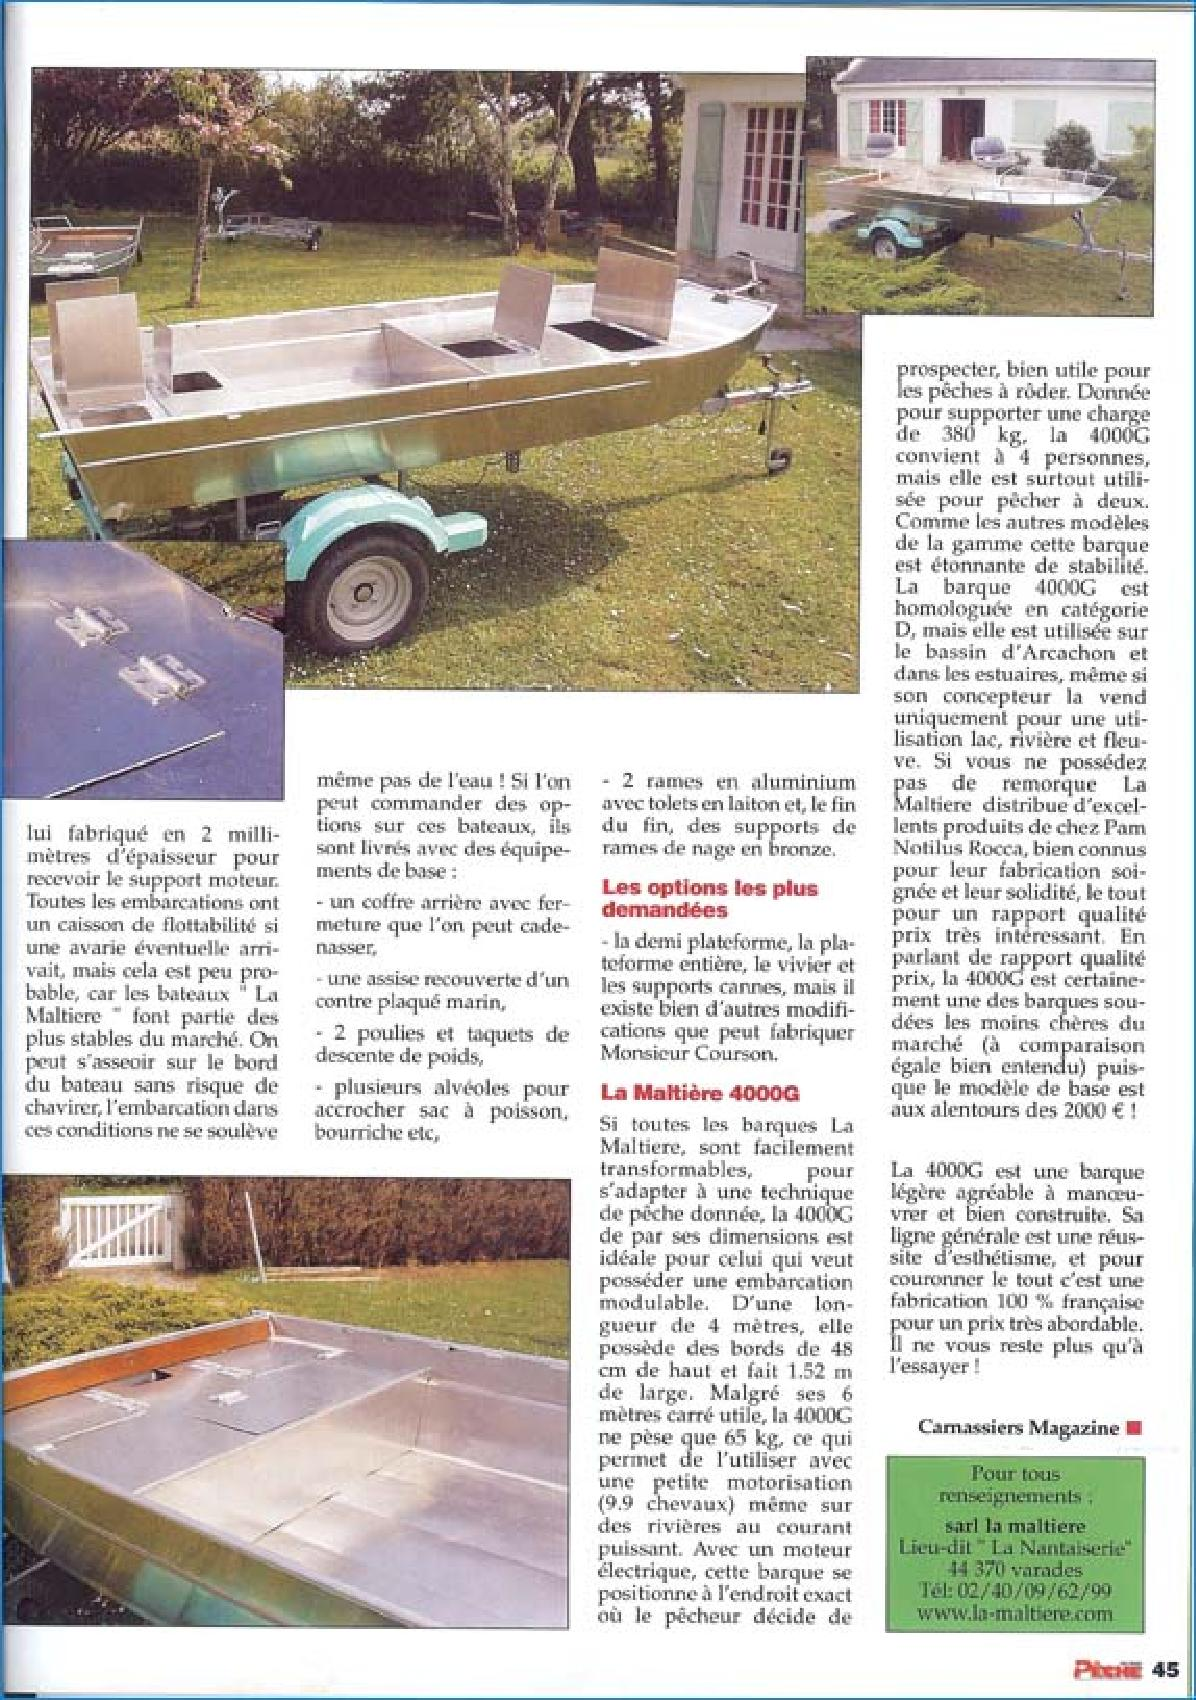 Carnassier magazine page 2